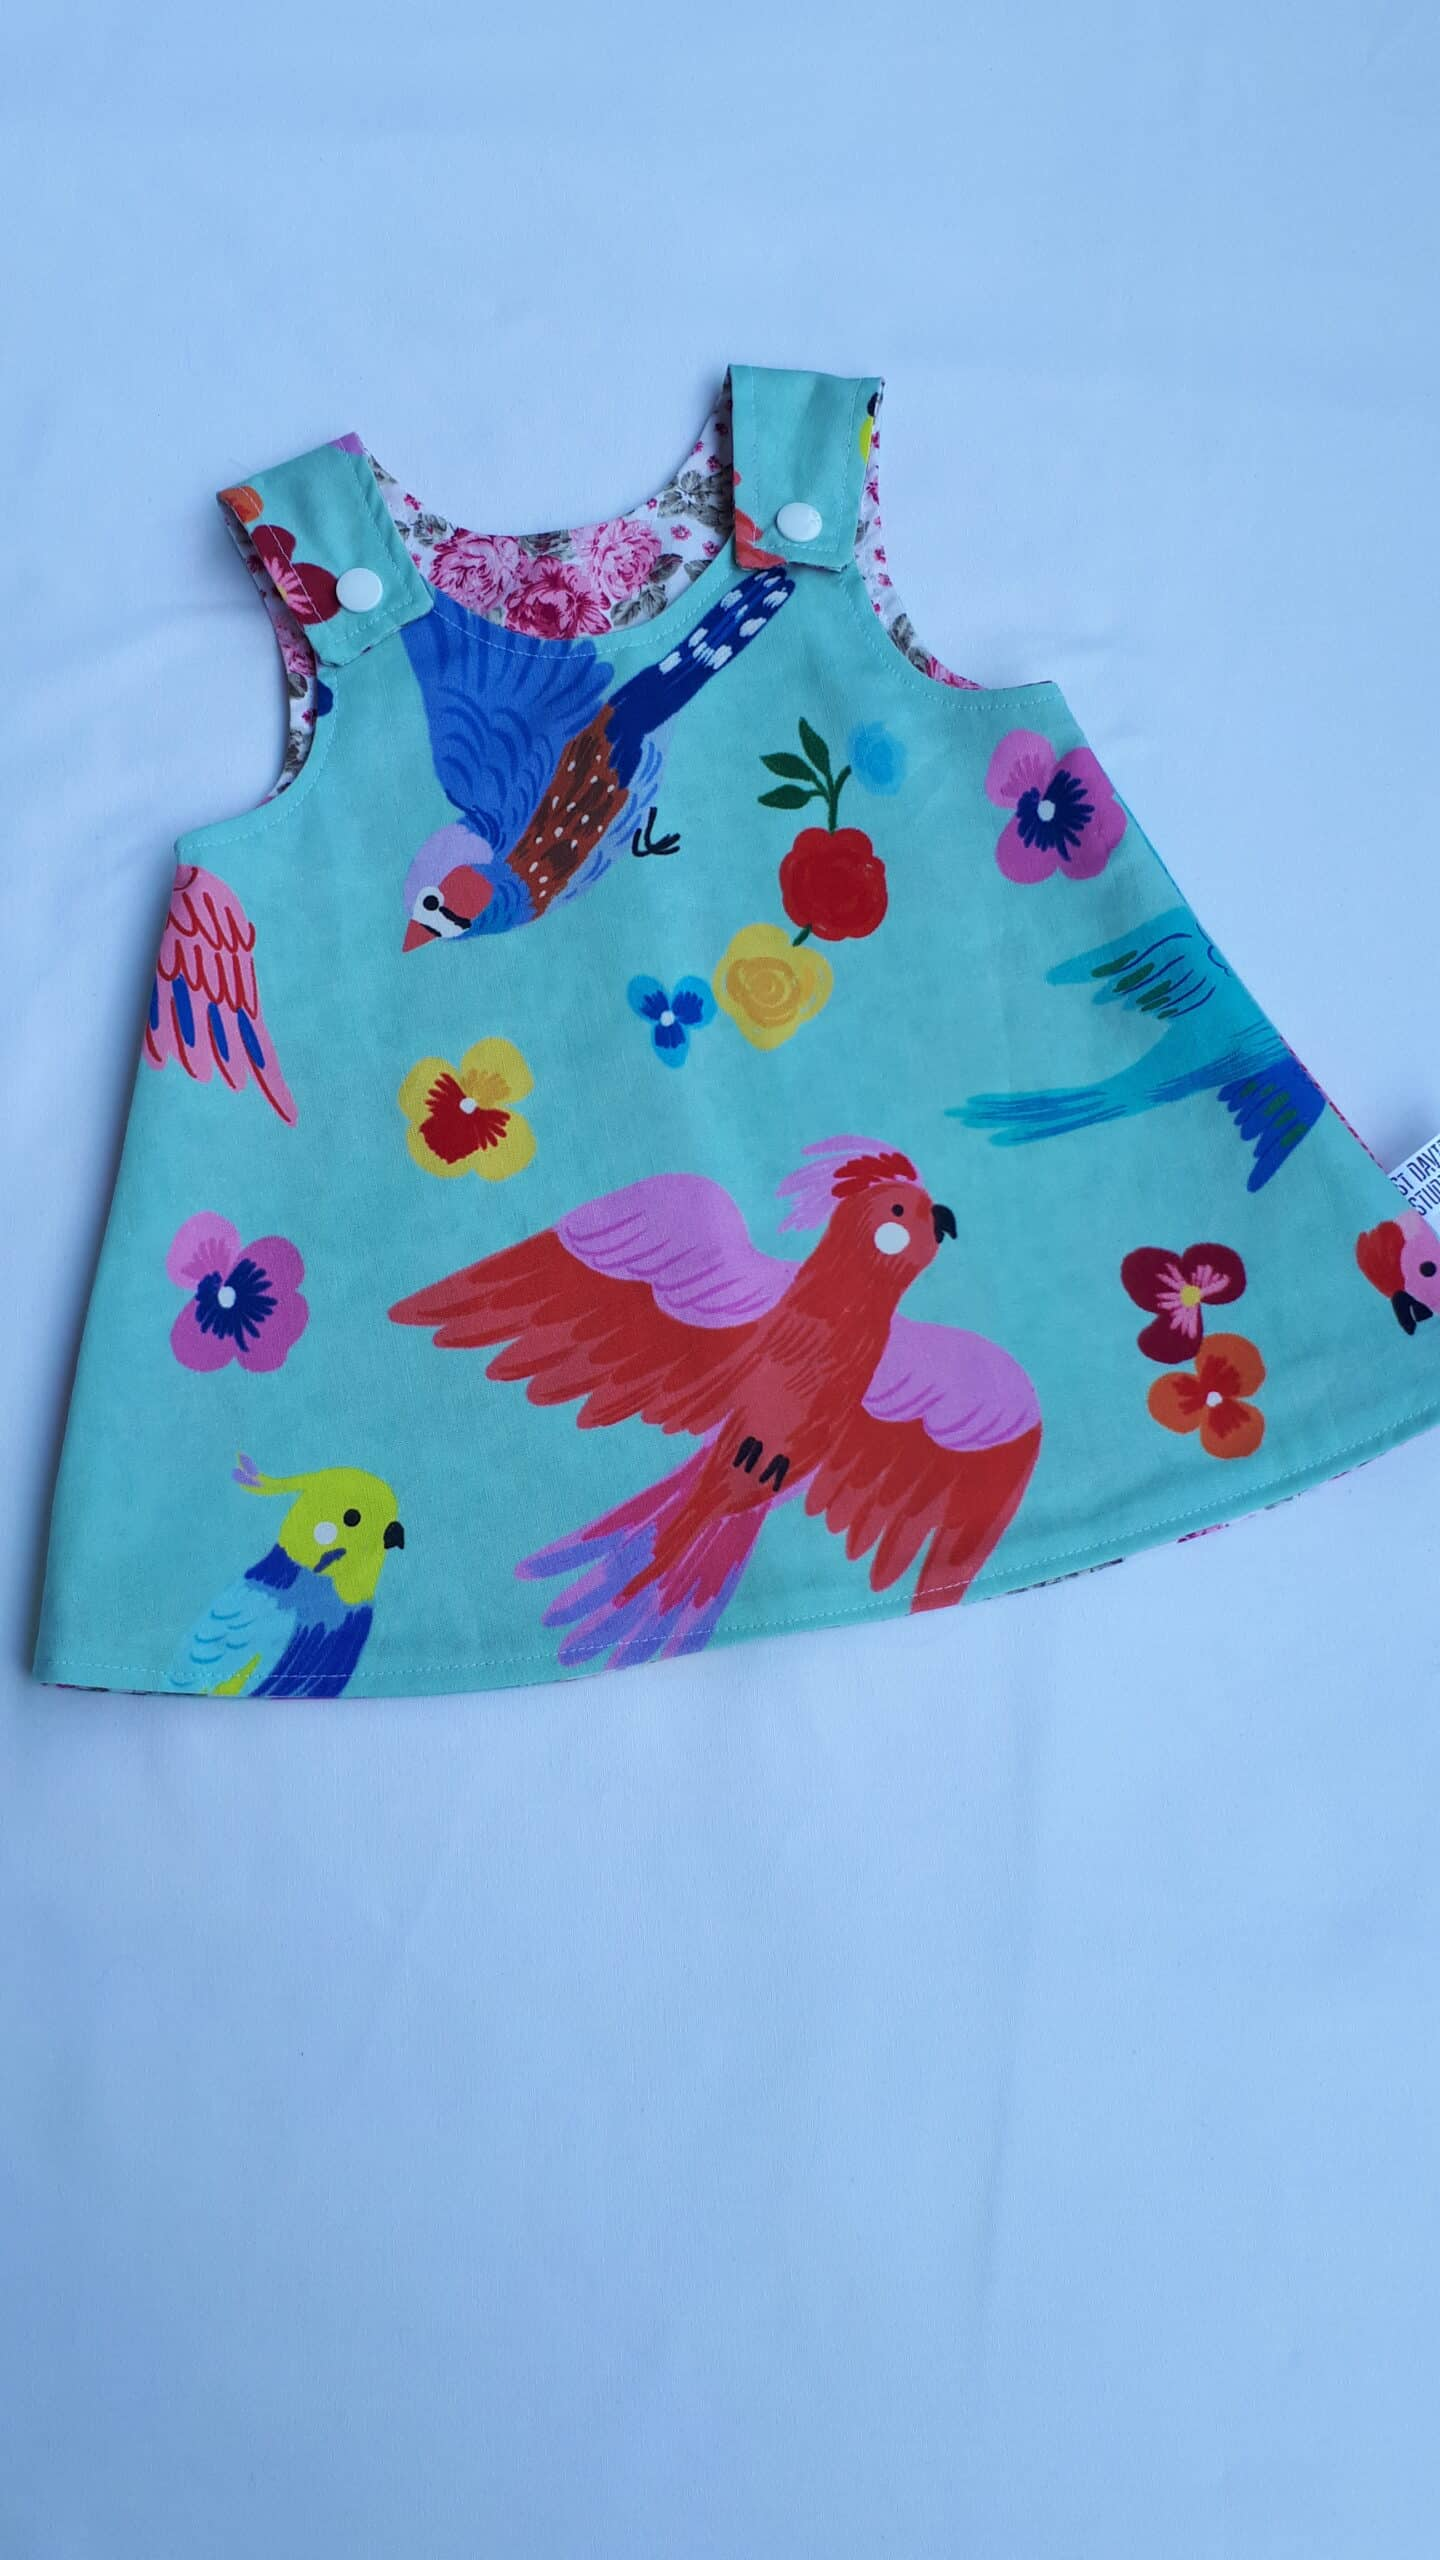 Children's Size 000 Reversible Pinafore Dress – Blue Birds And Pink Roses By St David Studio 3065